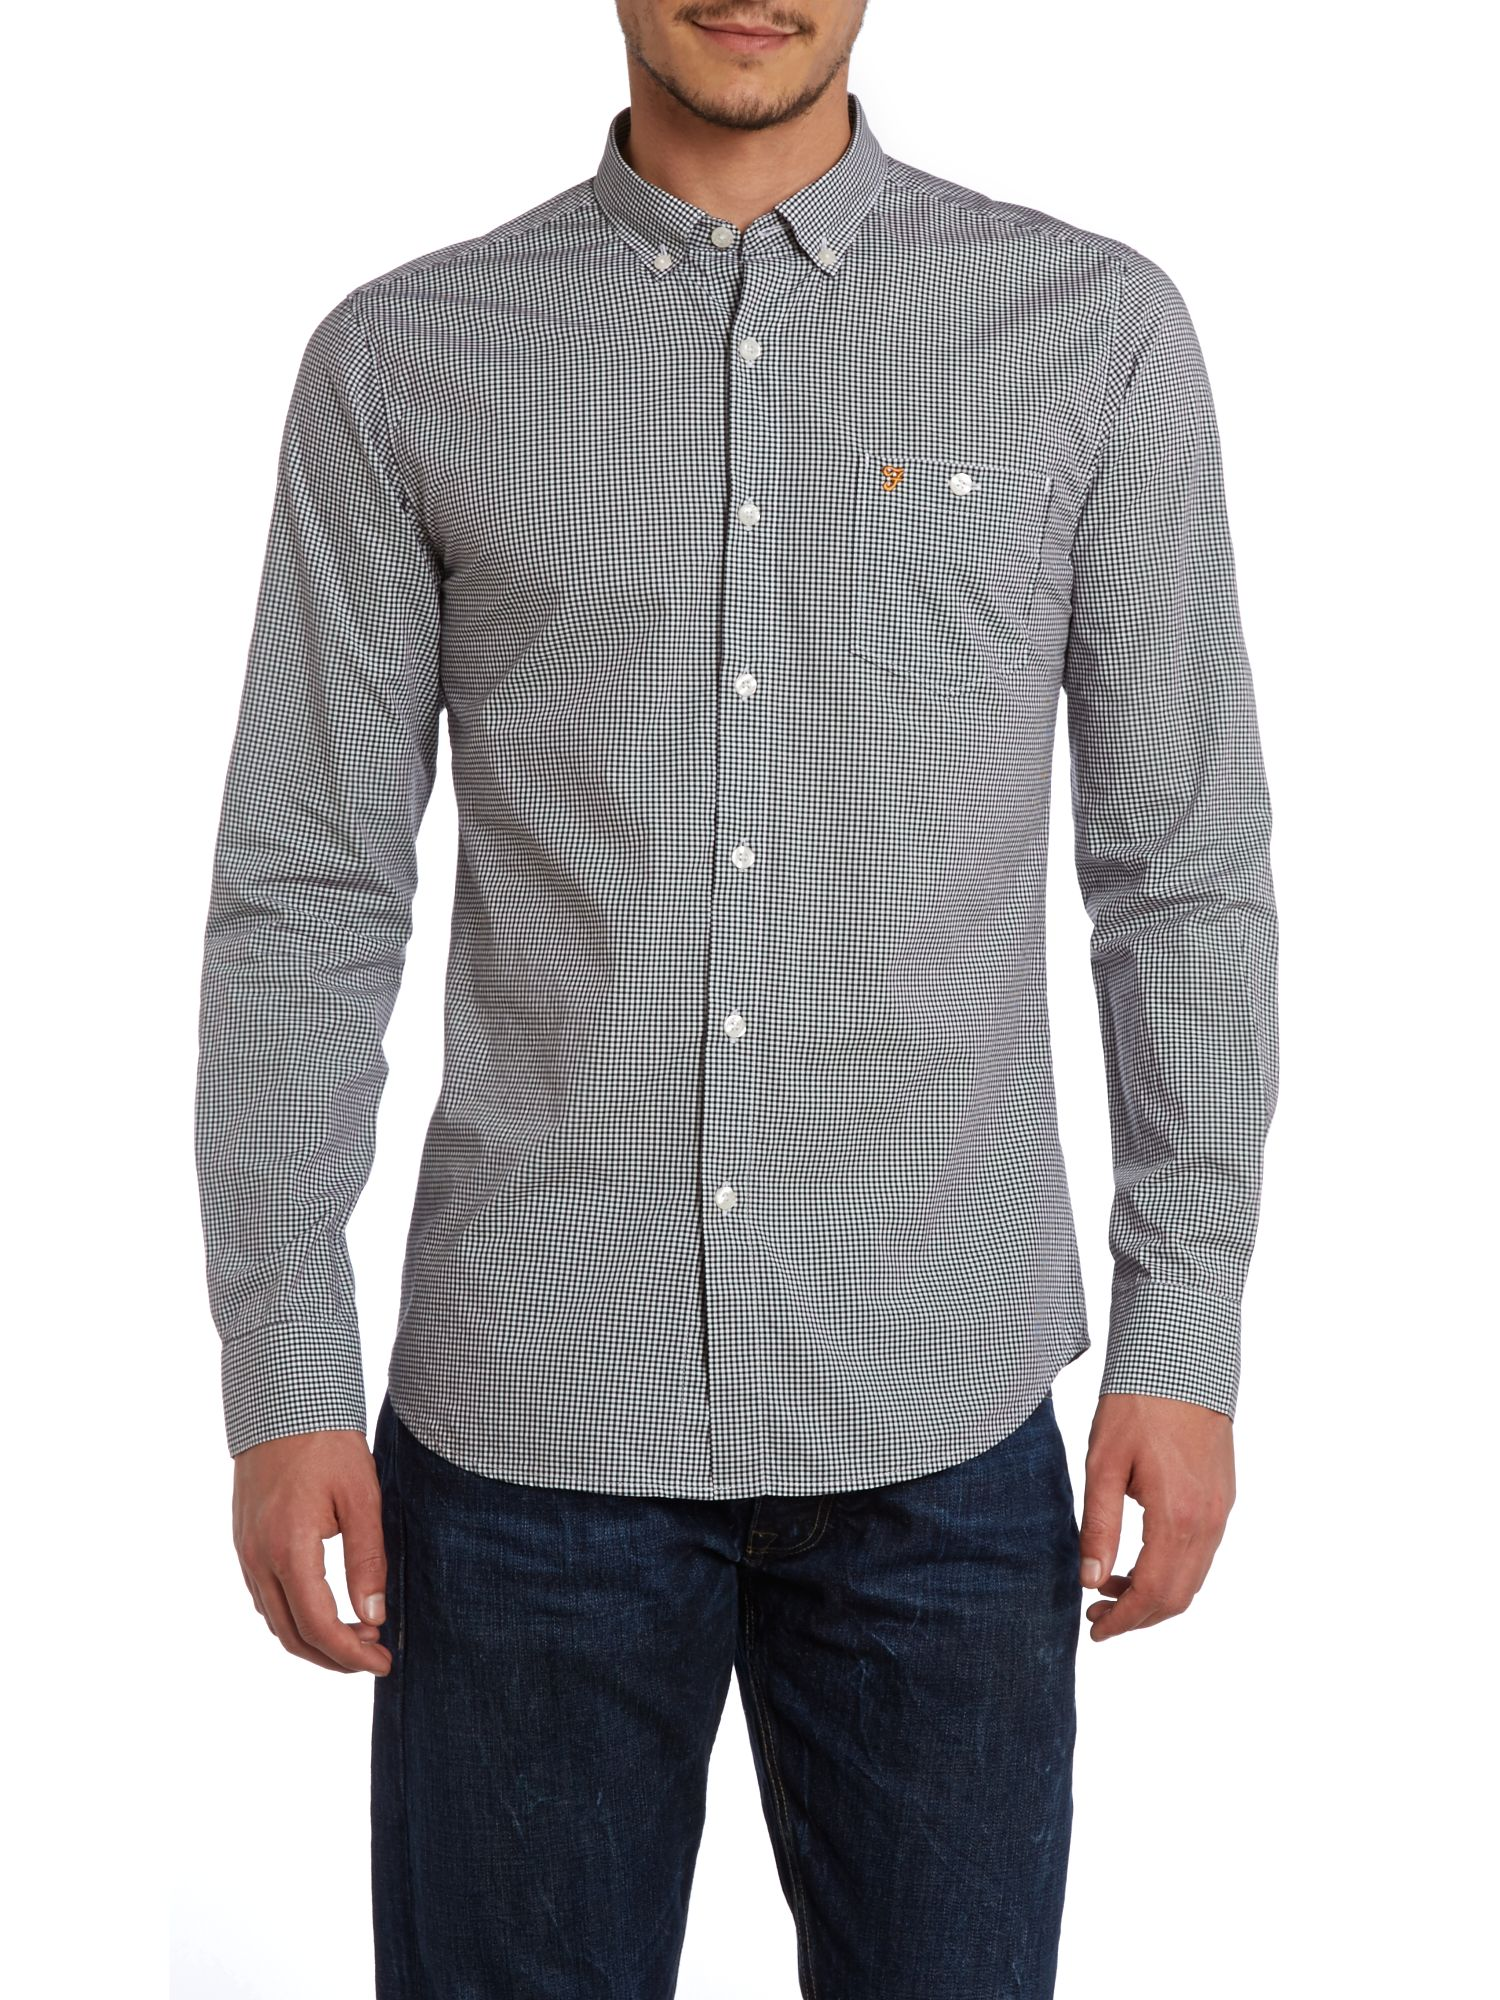 Youlton gingham long sleeve shirt